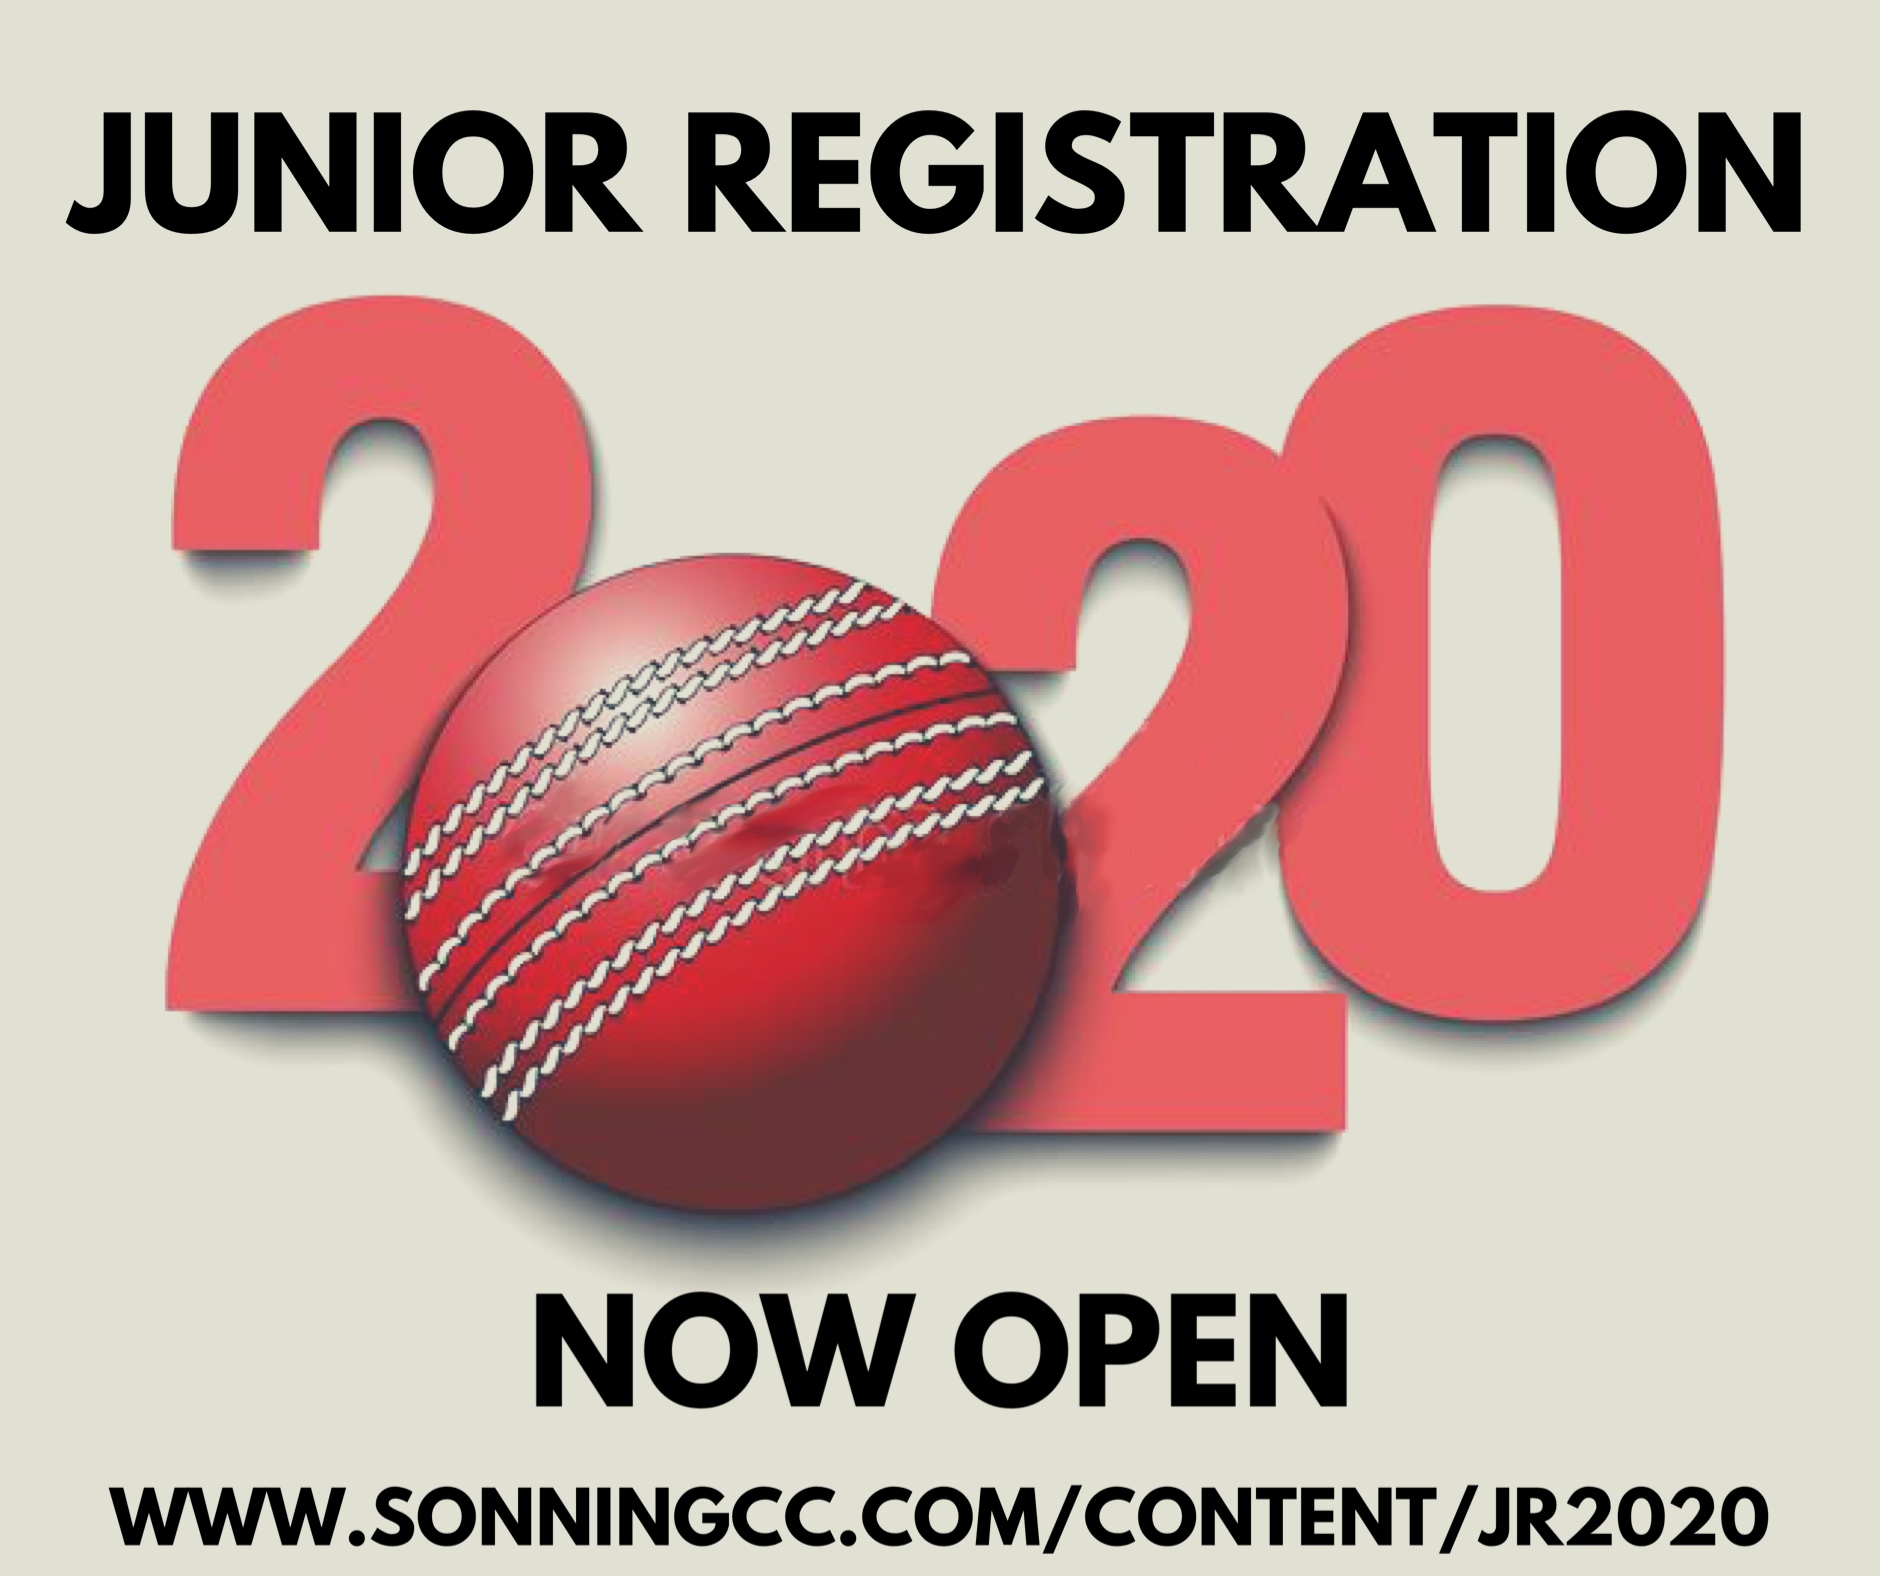 Junior Registration Now Open for 2020 Season